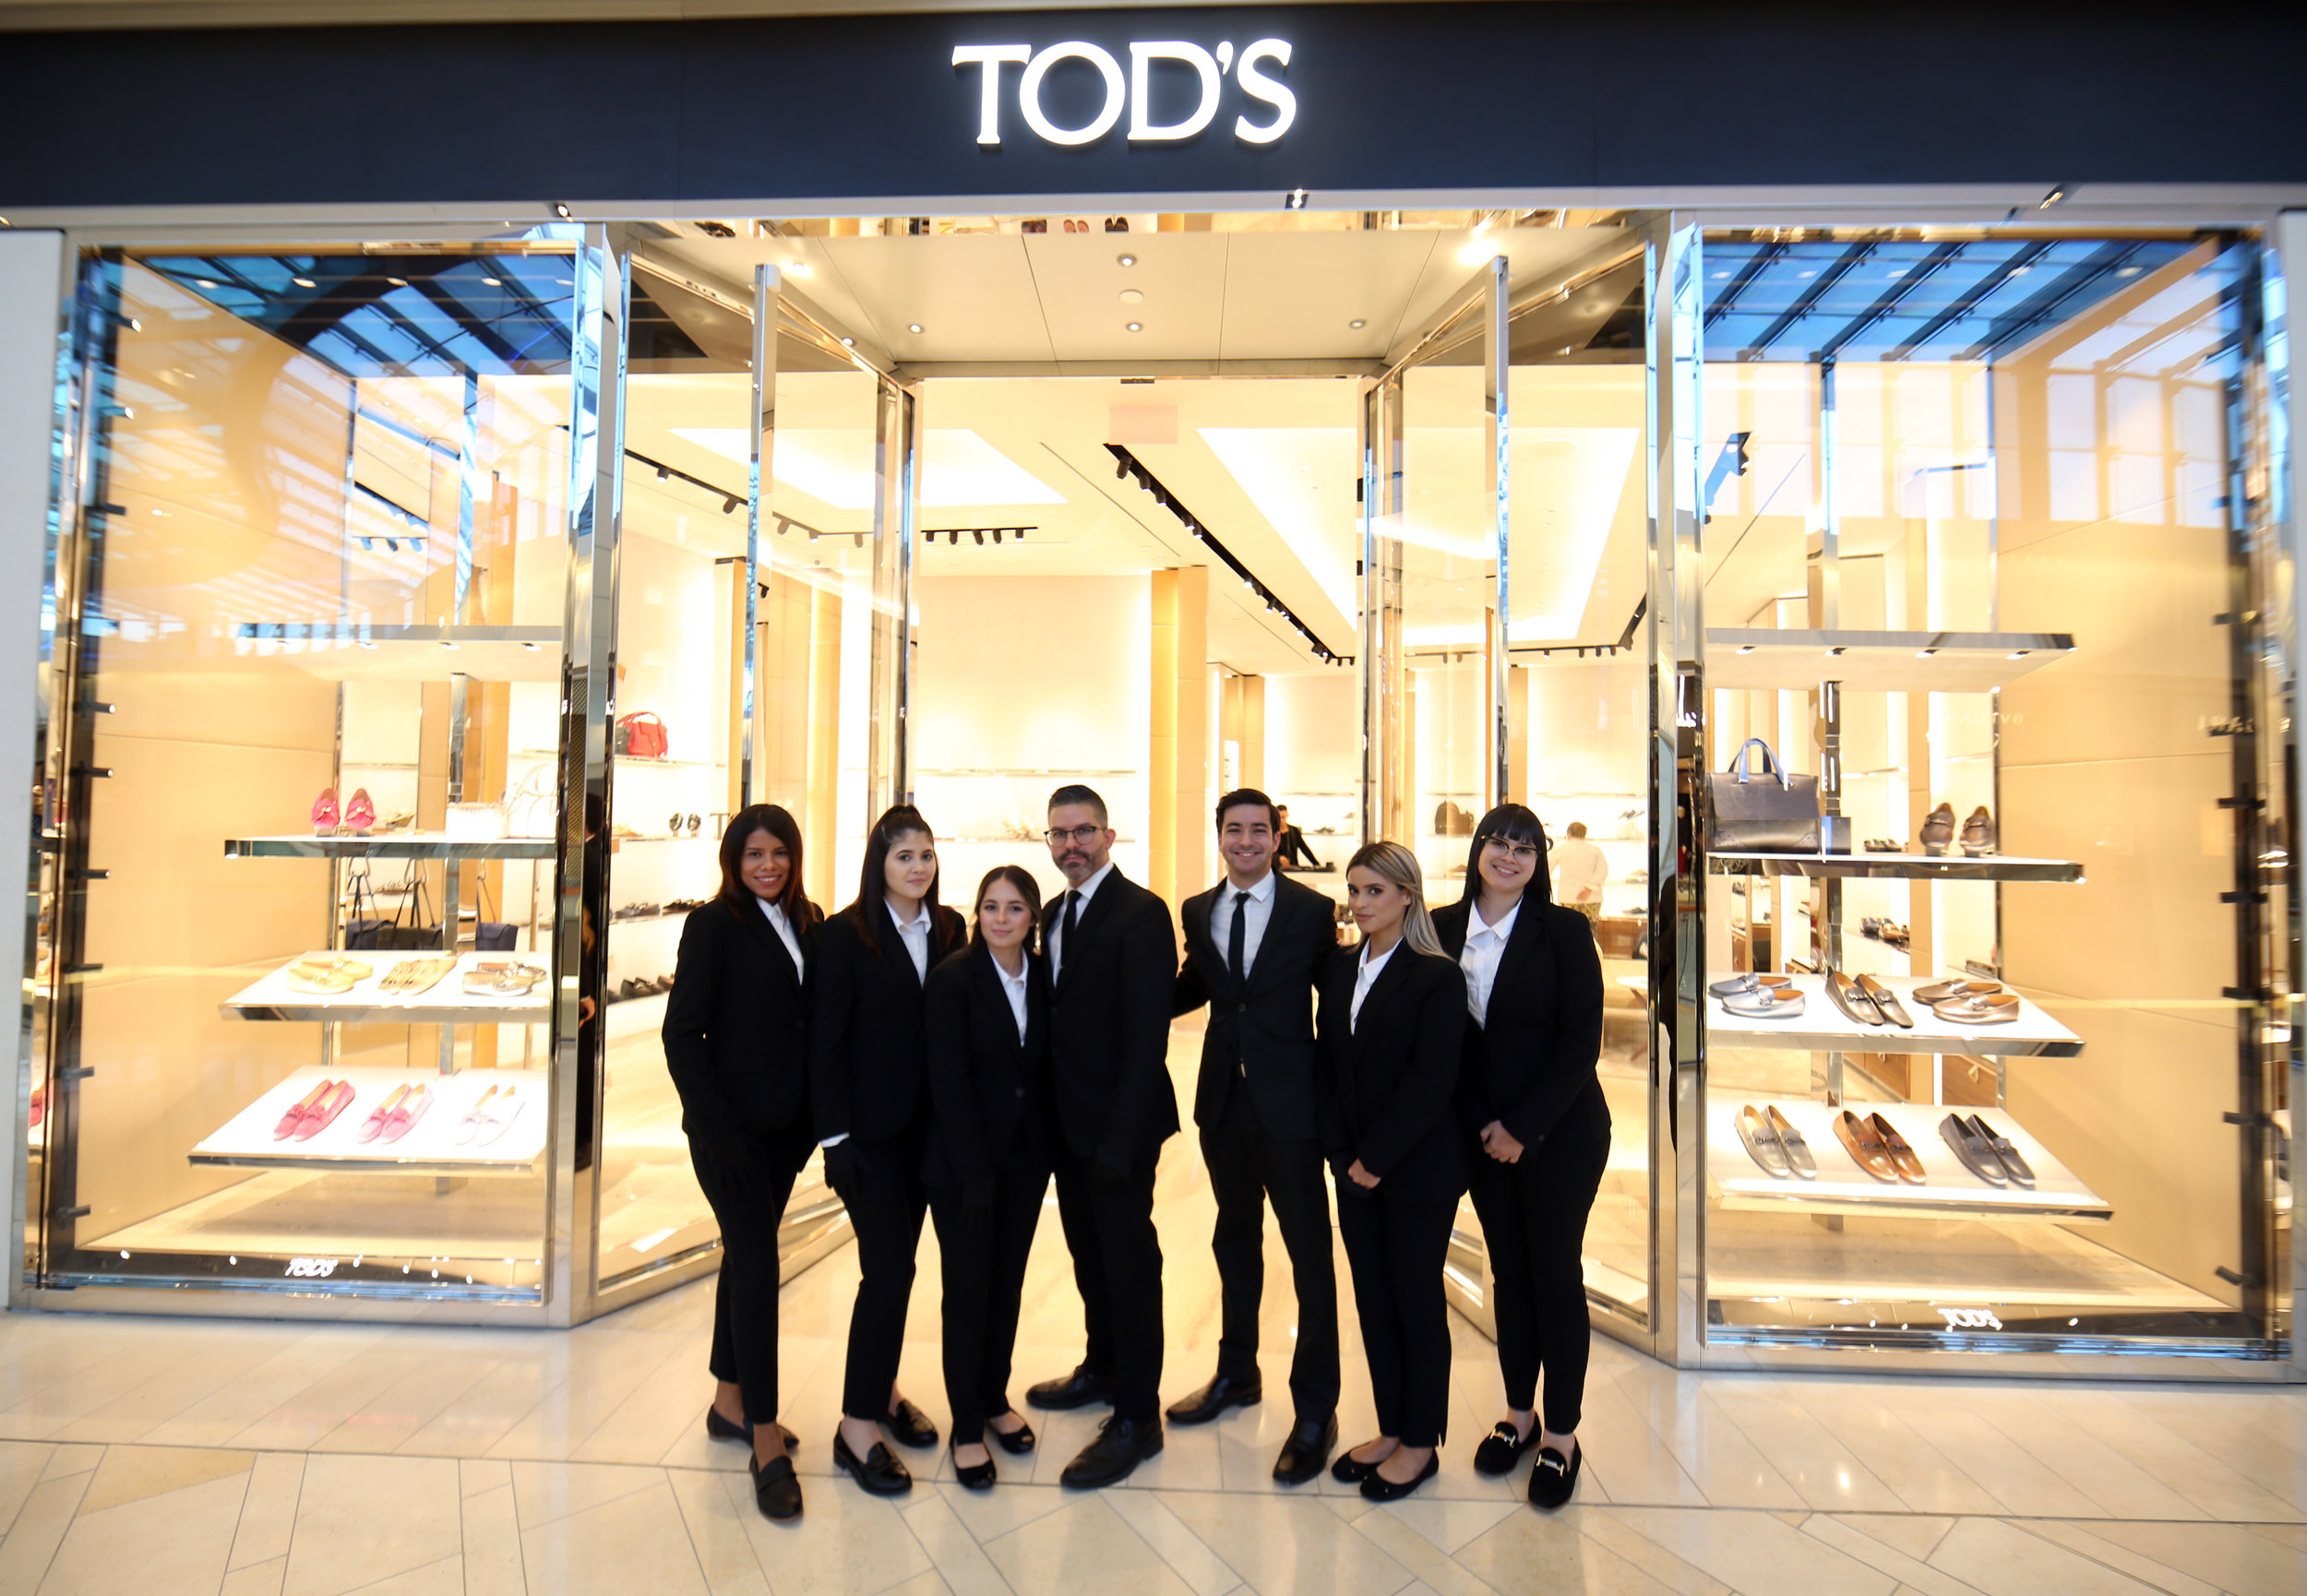 10% Discount for Key Club Members - Personal Purchases: 10% discount on products from Tod's boutique, The Mall of San Juan, on purchases made by Key Club members and their families. Non-Presential Purchases: The Tod's boutique, The Mall of San Juan, offers Key Club members the option to buy or separate products through digital catalog (sent by Whatsapp or Email) and by phone.